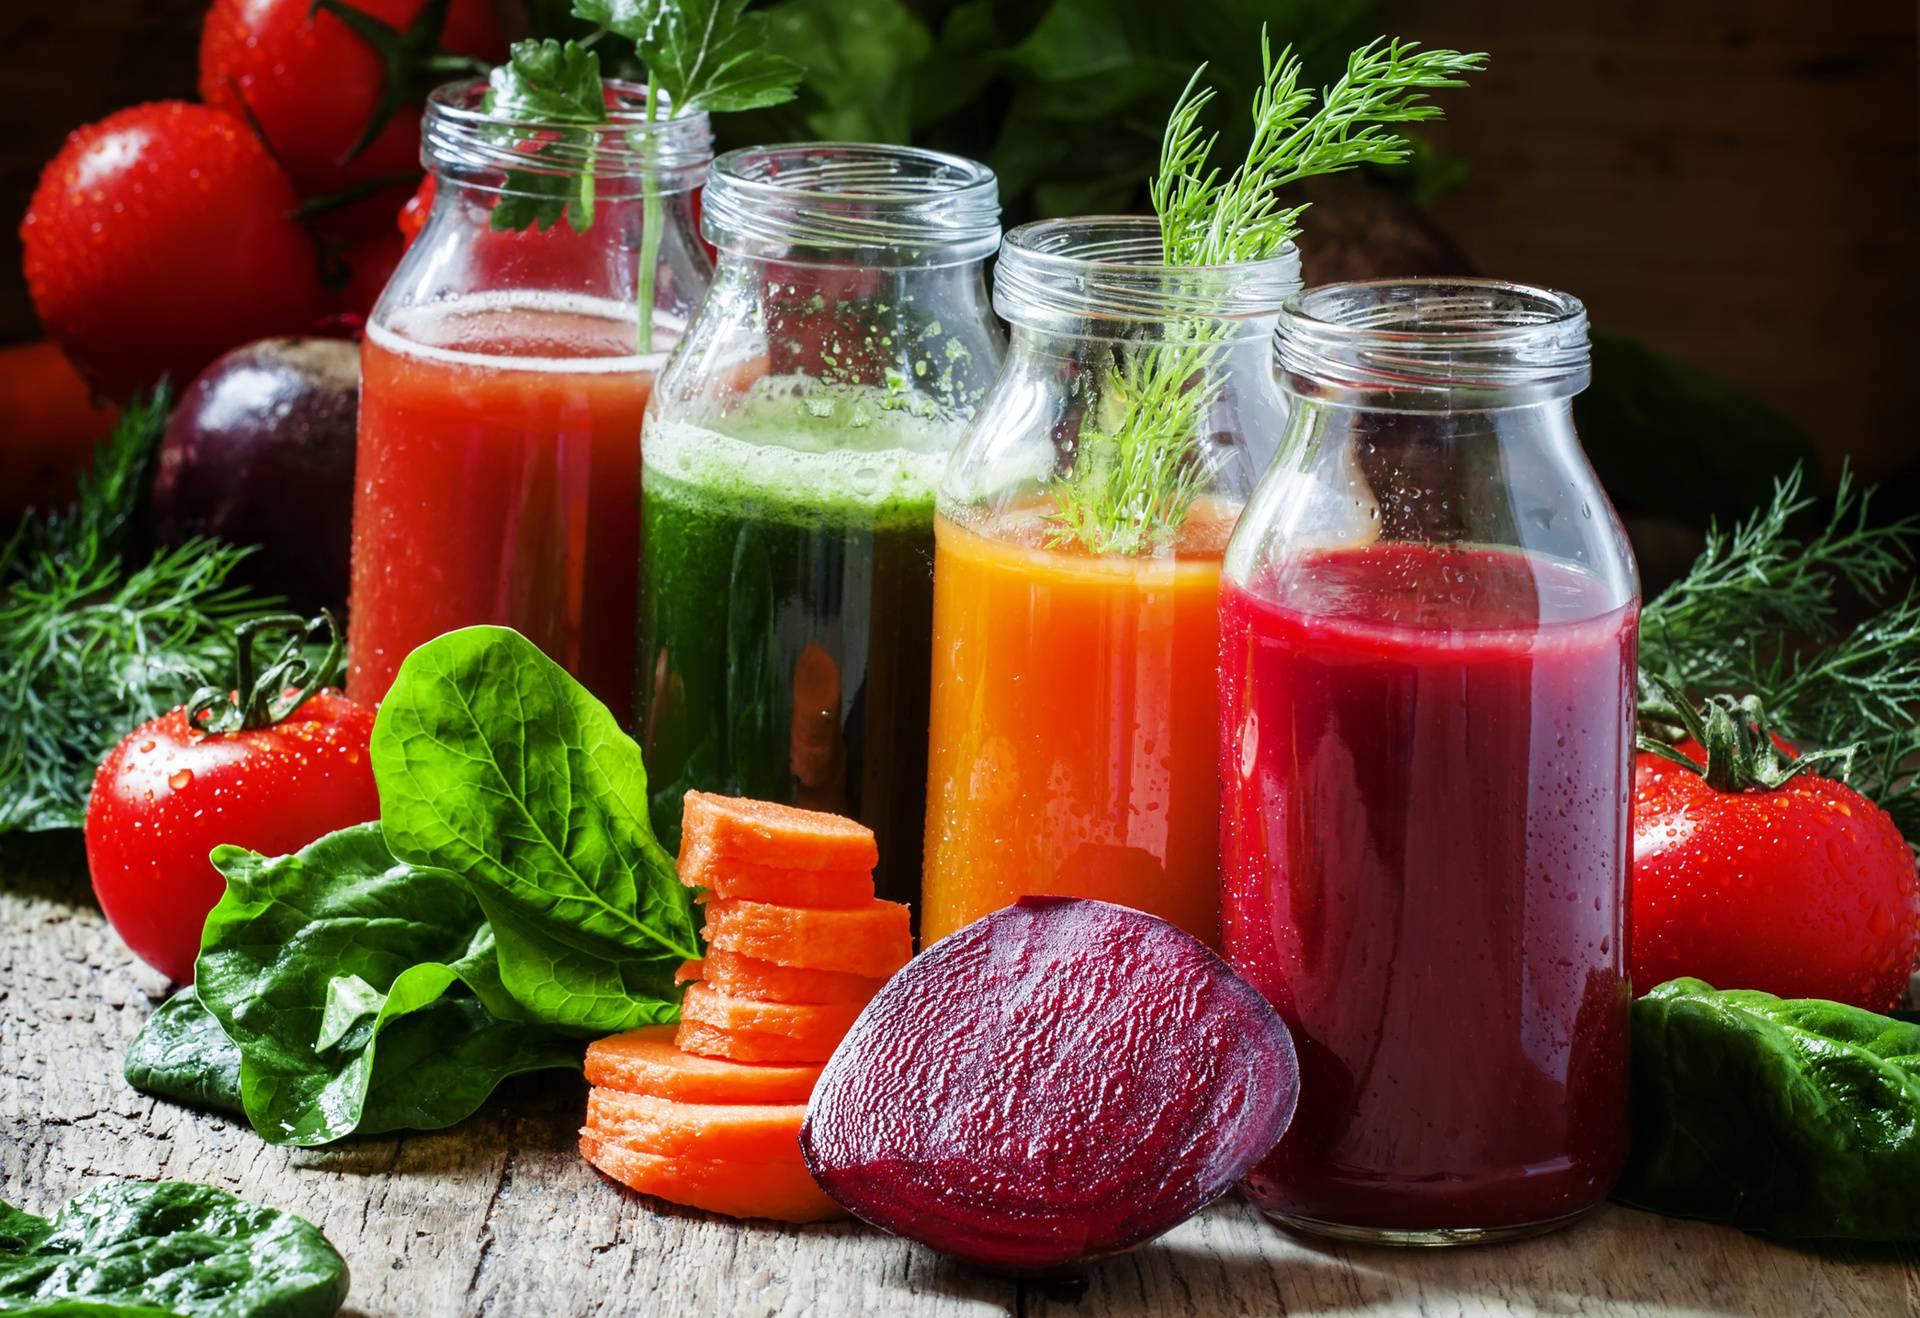 Four kind of vegetable juices: red, burgundy, orange, green